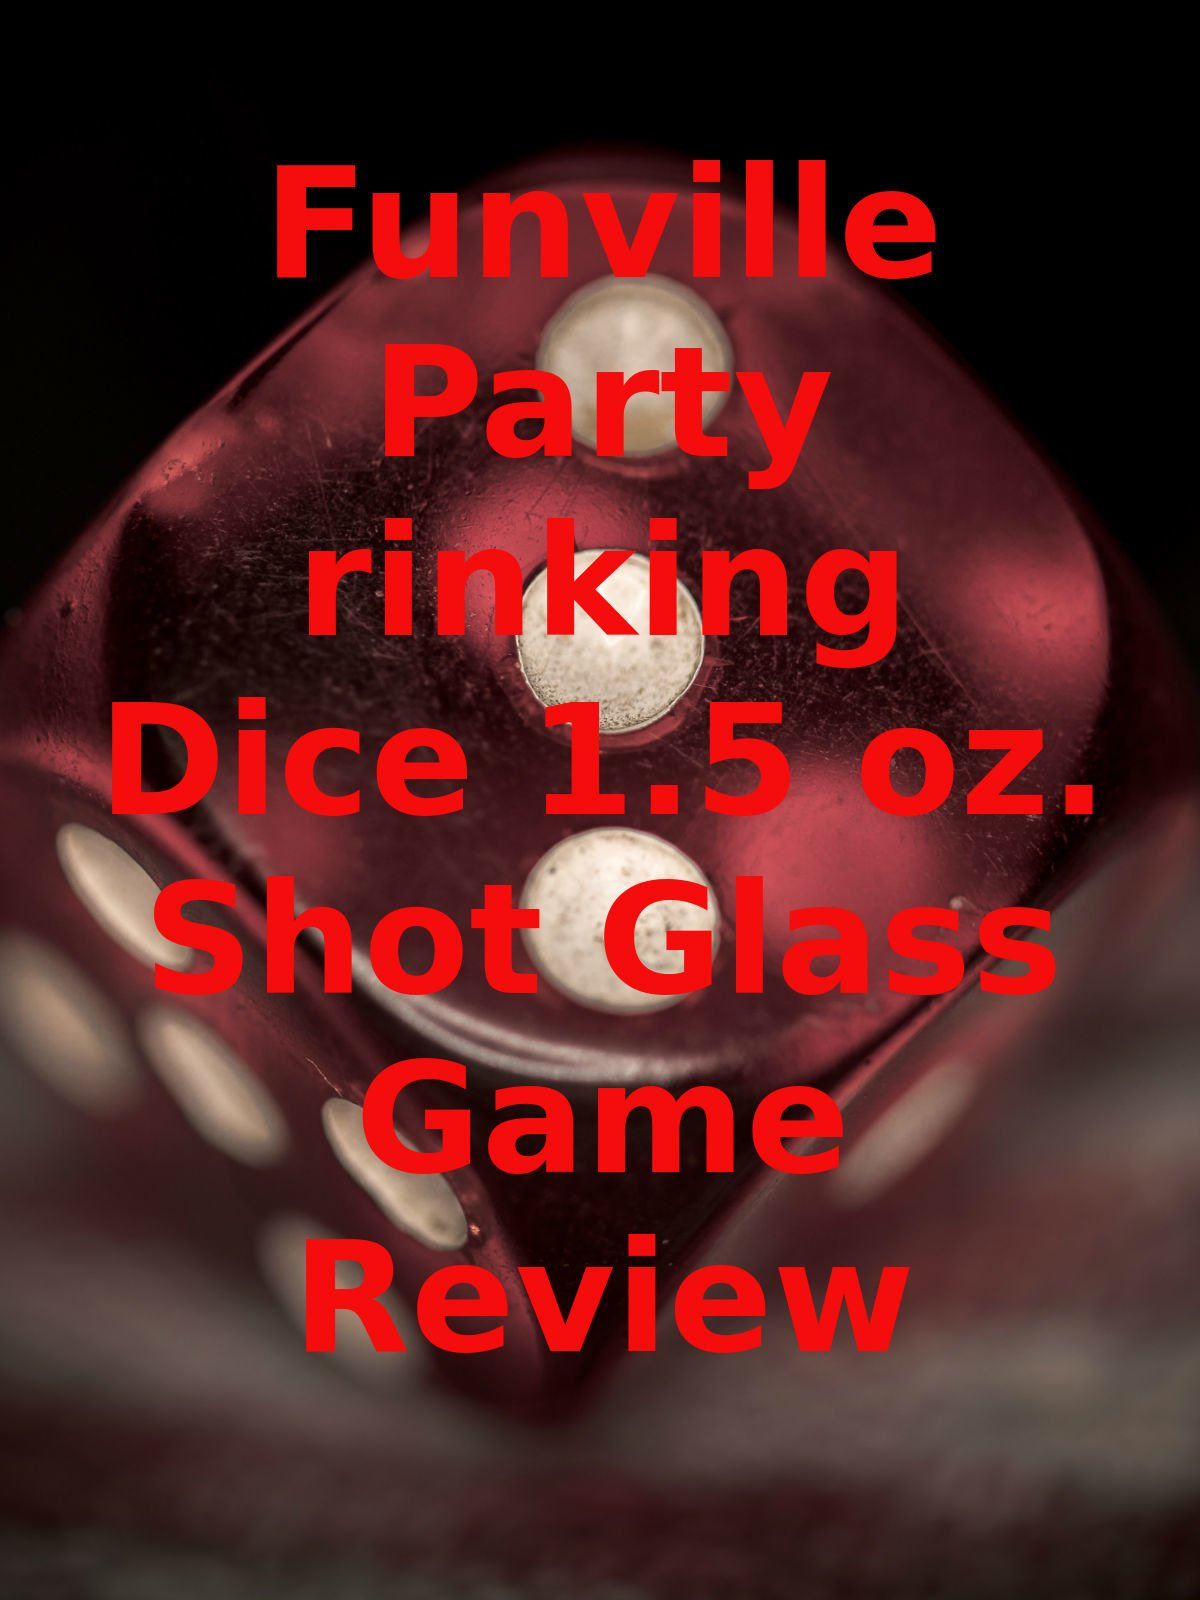 Review: Funville Party Drinking Dice 1.5 oz. Shot Glass Game Review on Amazon Prime Video UK